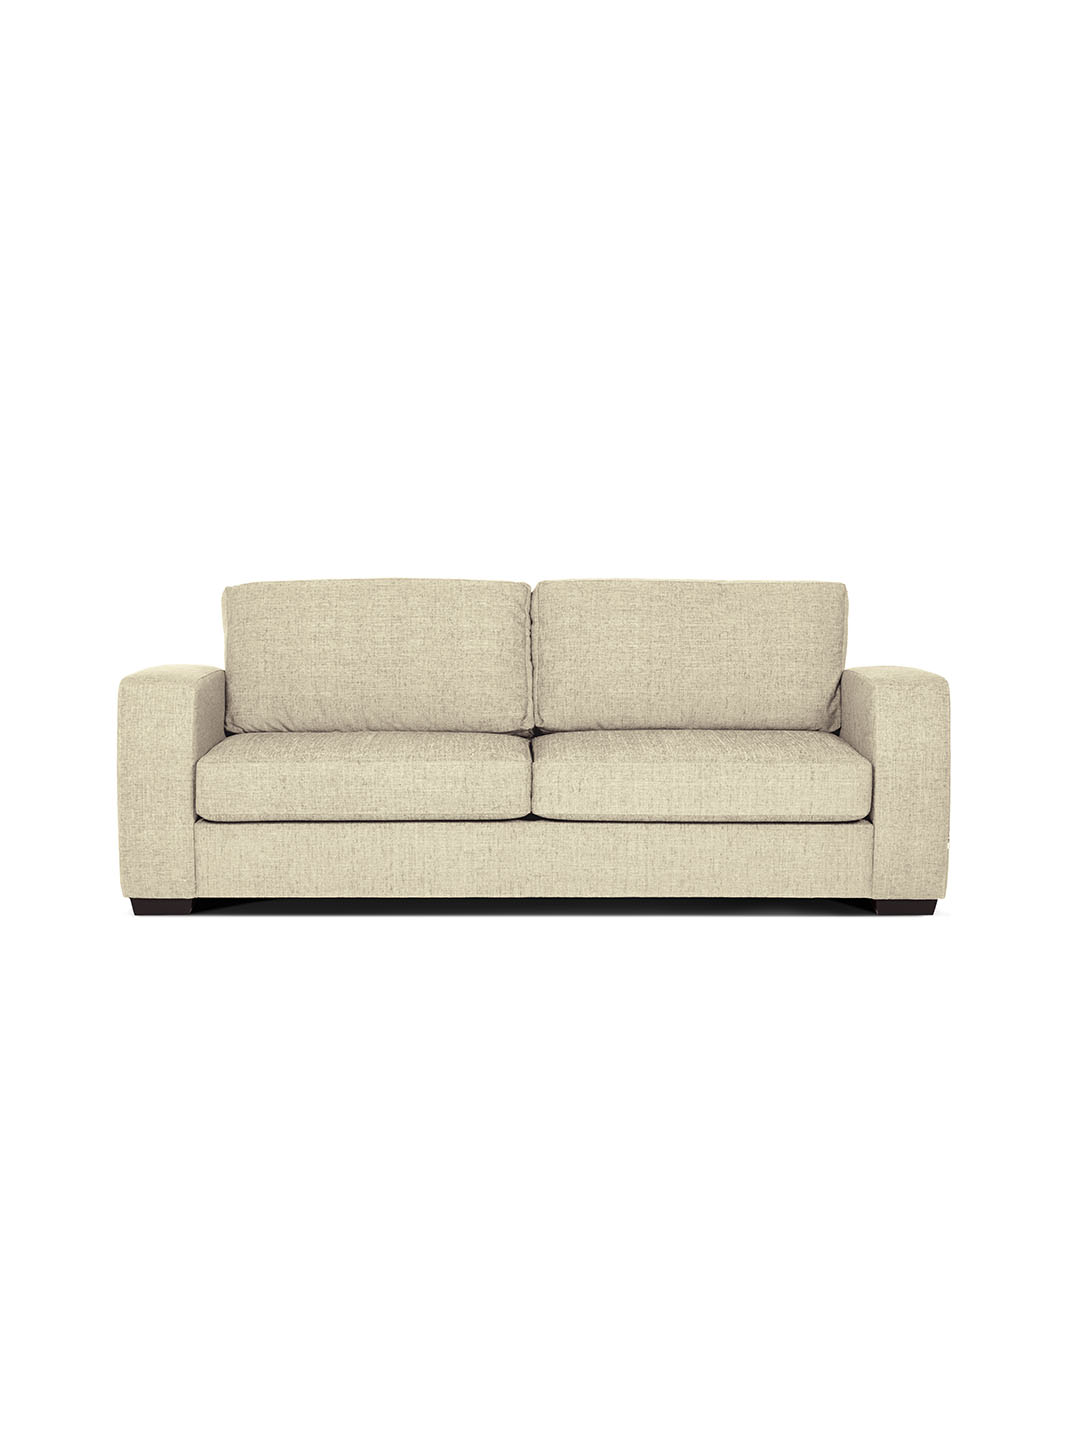 Easy armchair loveseat or sofa mariette clermont for Liquidation de sofa